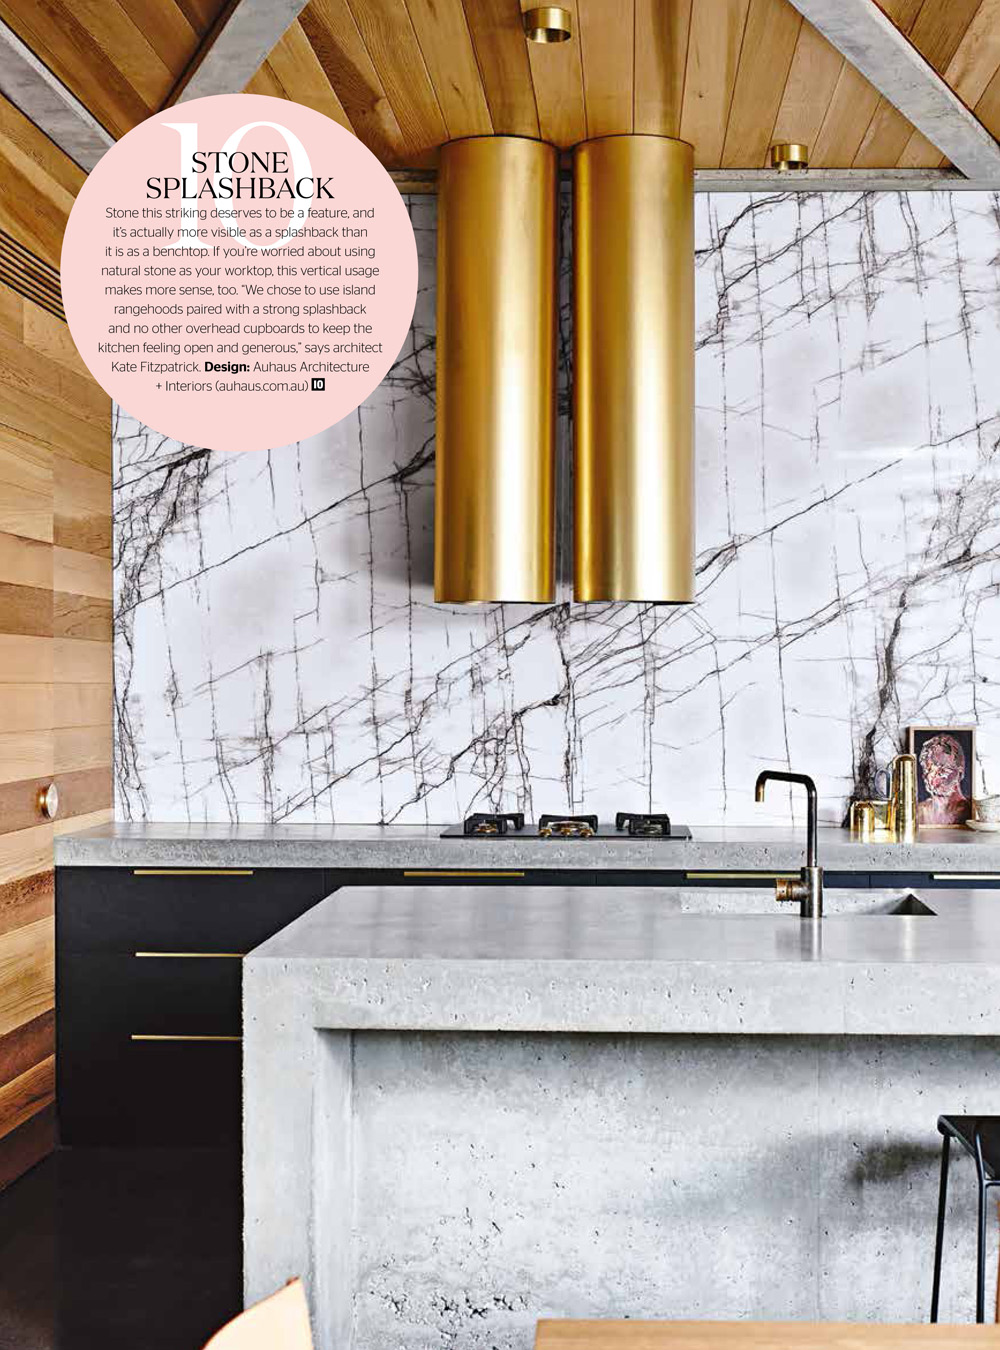 Pages from InsideOutMarch2018KitchenIdeaspages.jpg